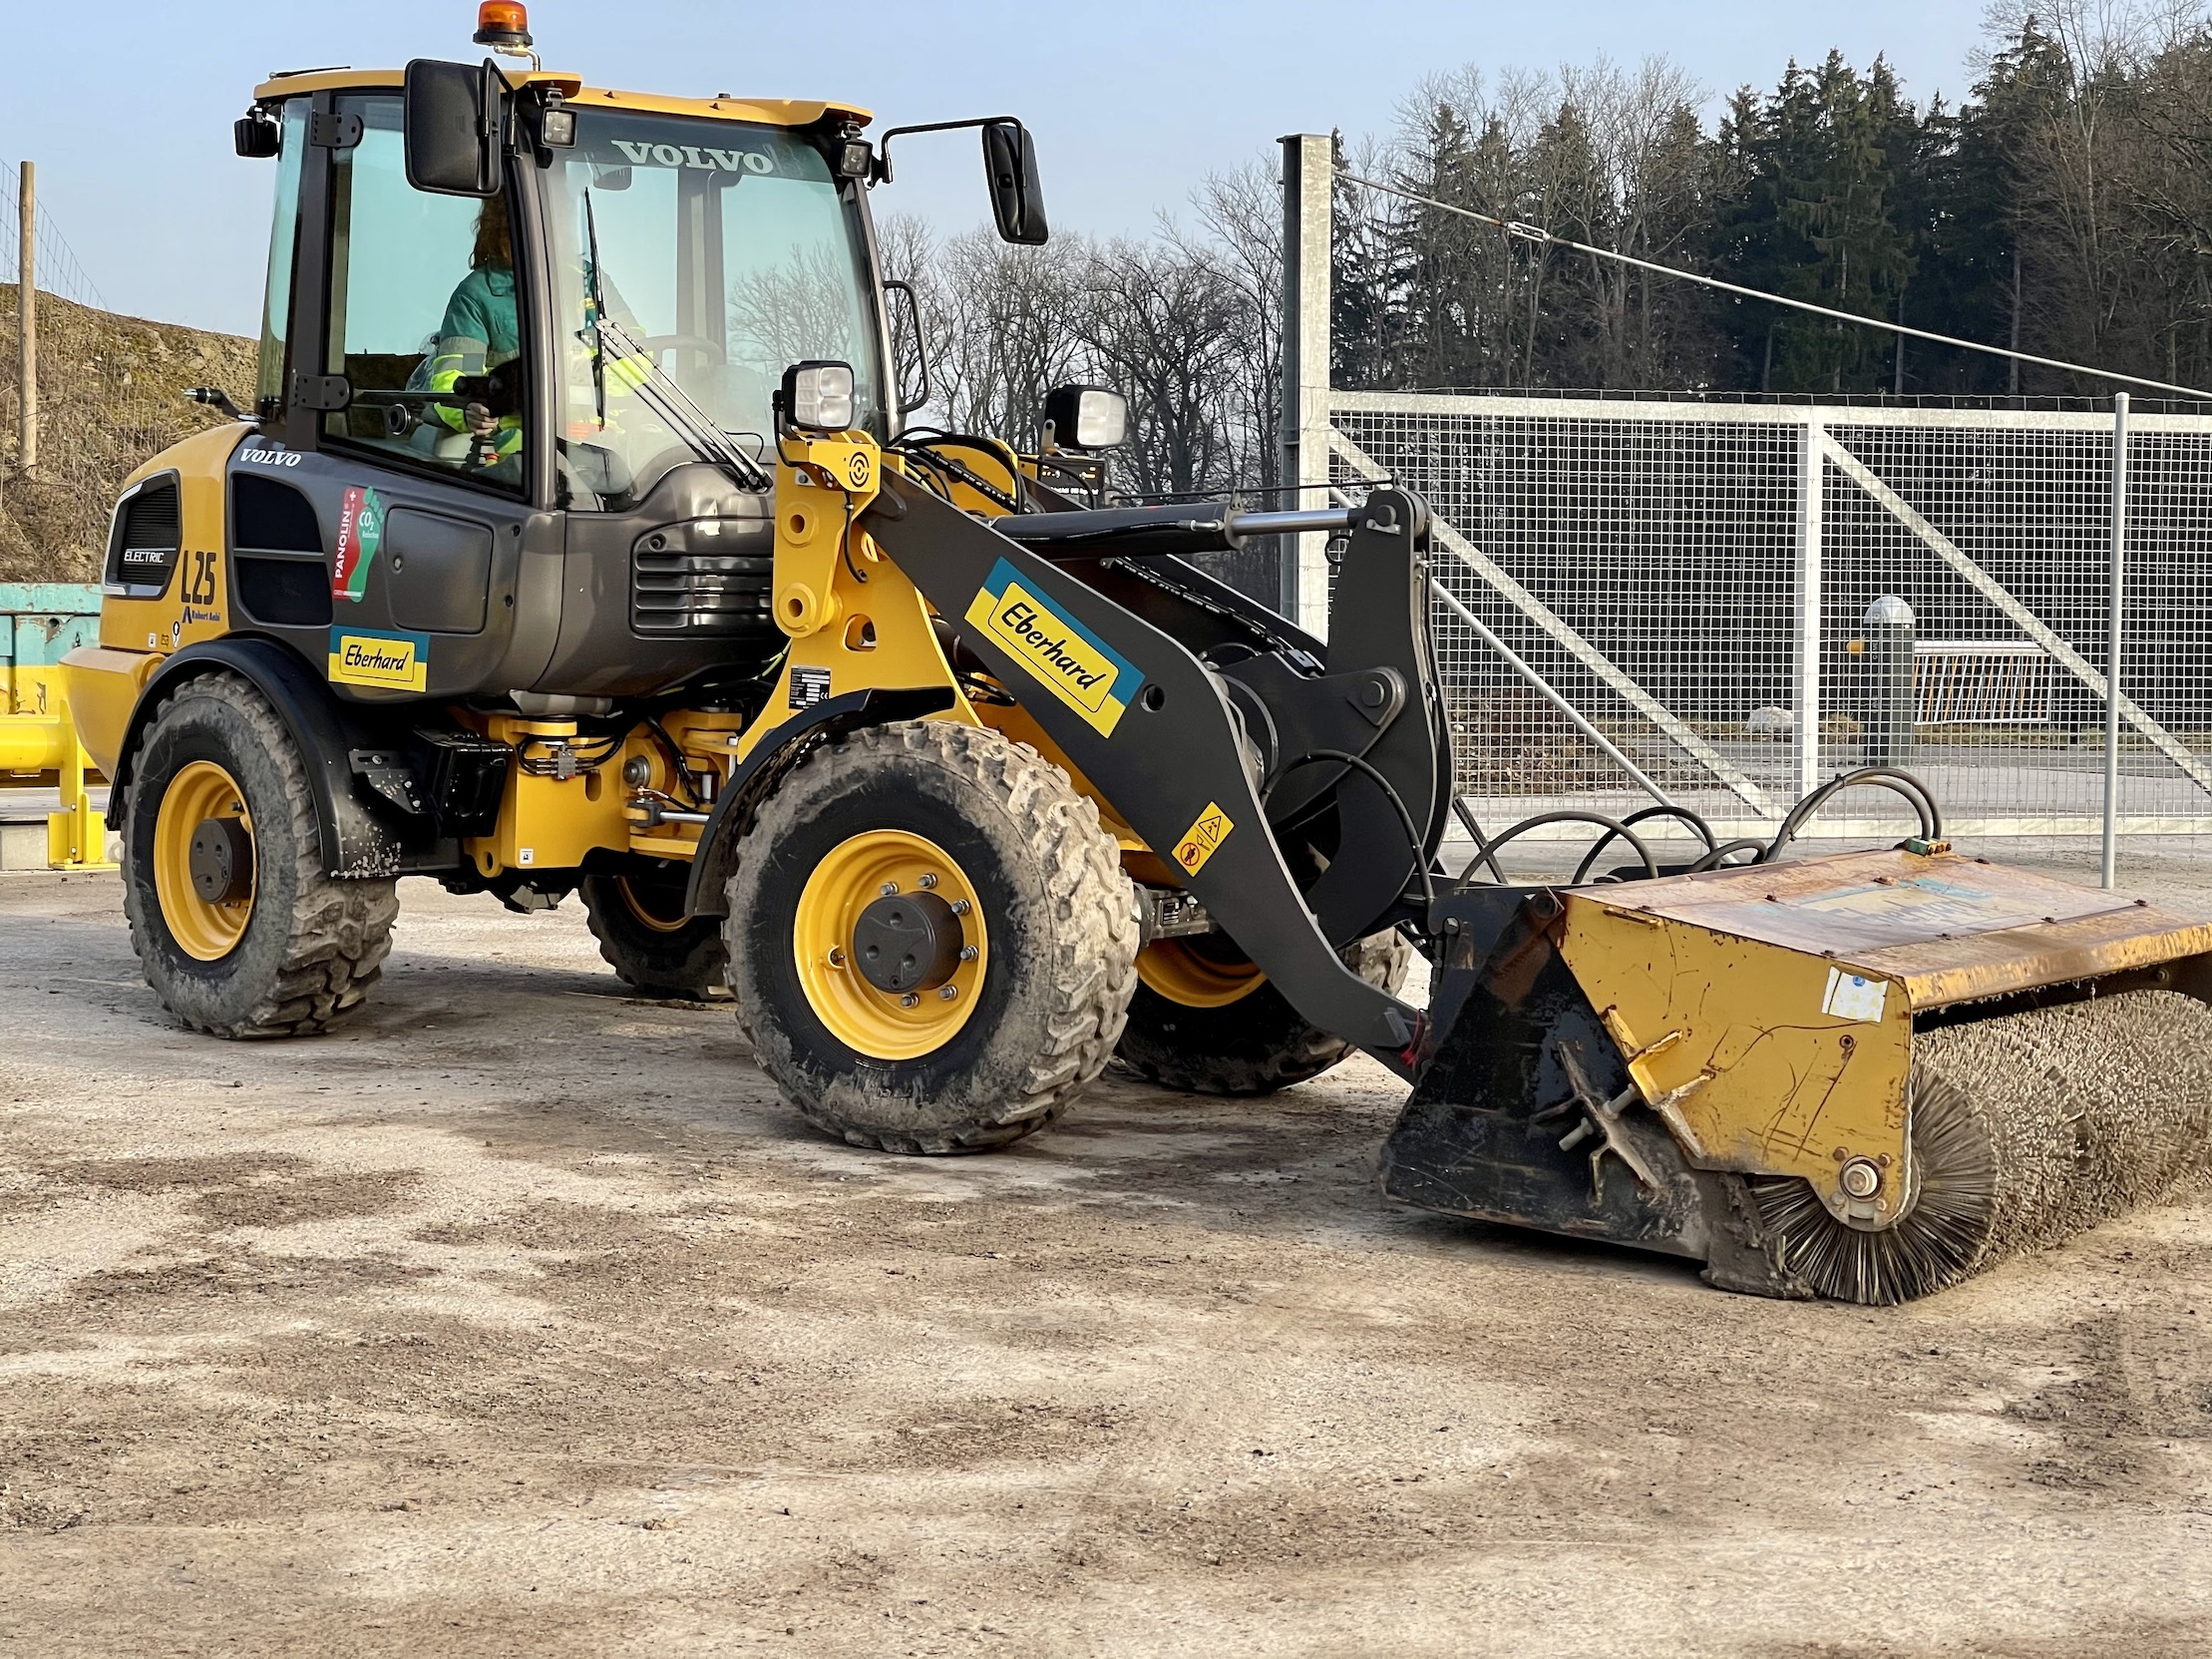 With zero-emissions and near silent operation, the L25 Electric is ideal for use on inner city construction sites